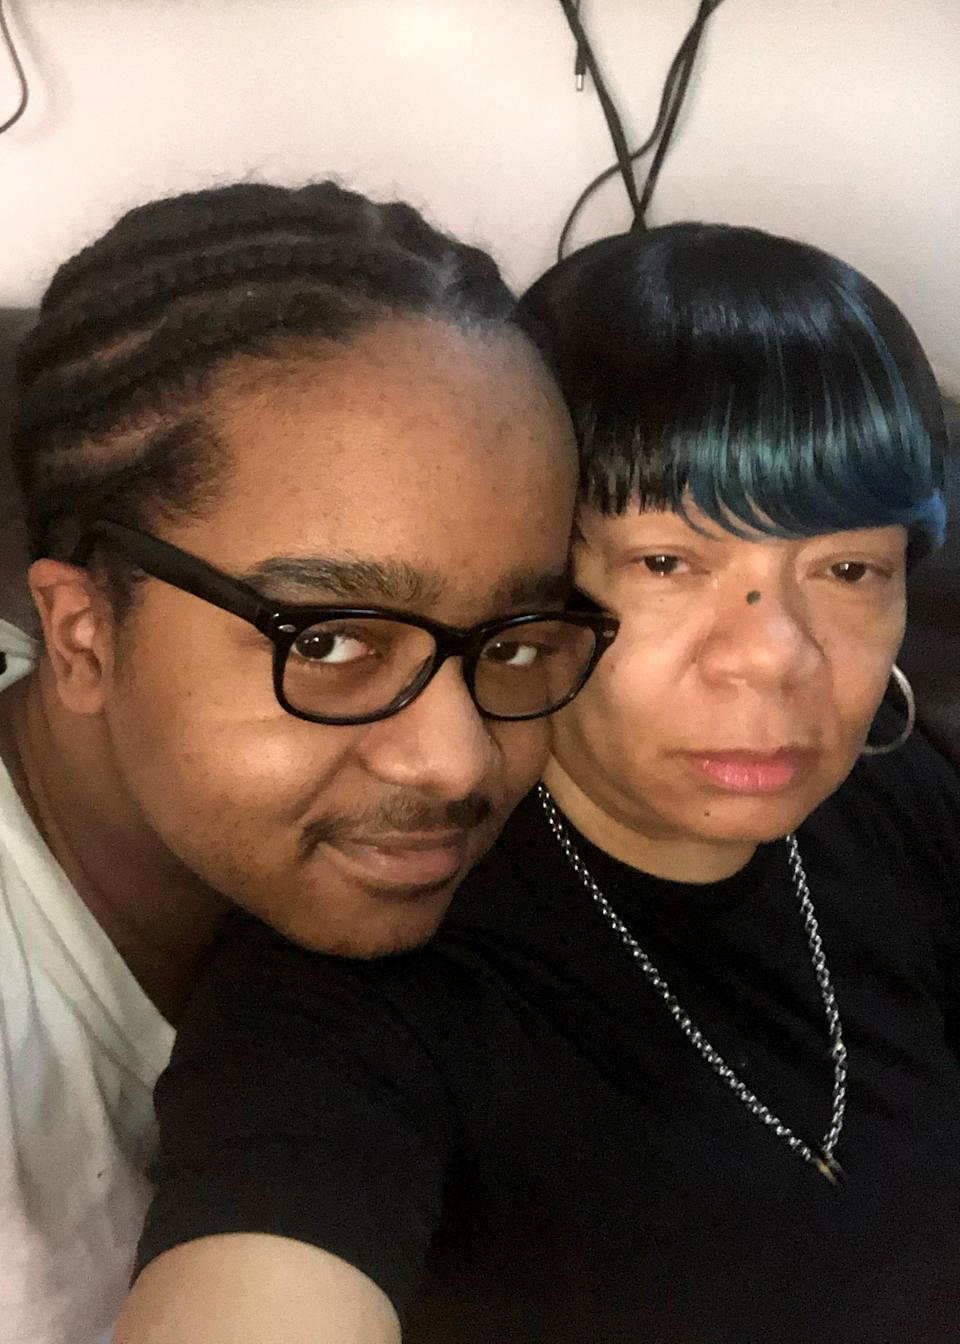 Image: Winston Brown, 15, and his mother, Gilian Mcleish. He was banished to virtual instruction at his charter school in Philadelphia. (Family Handout)